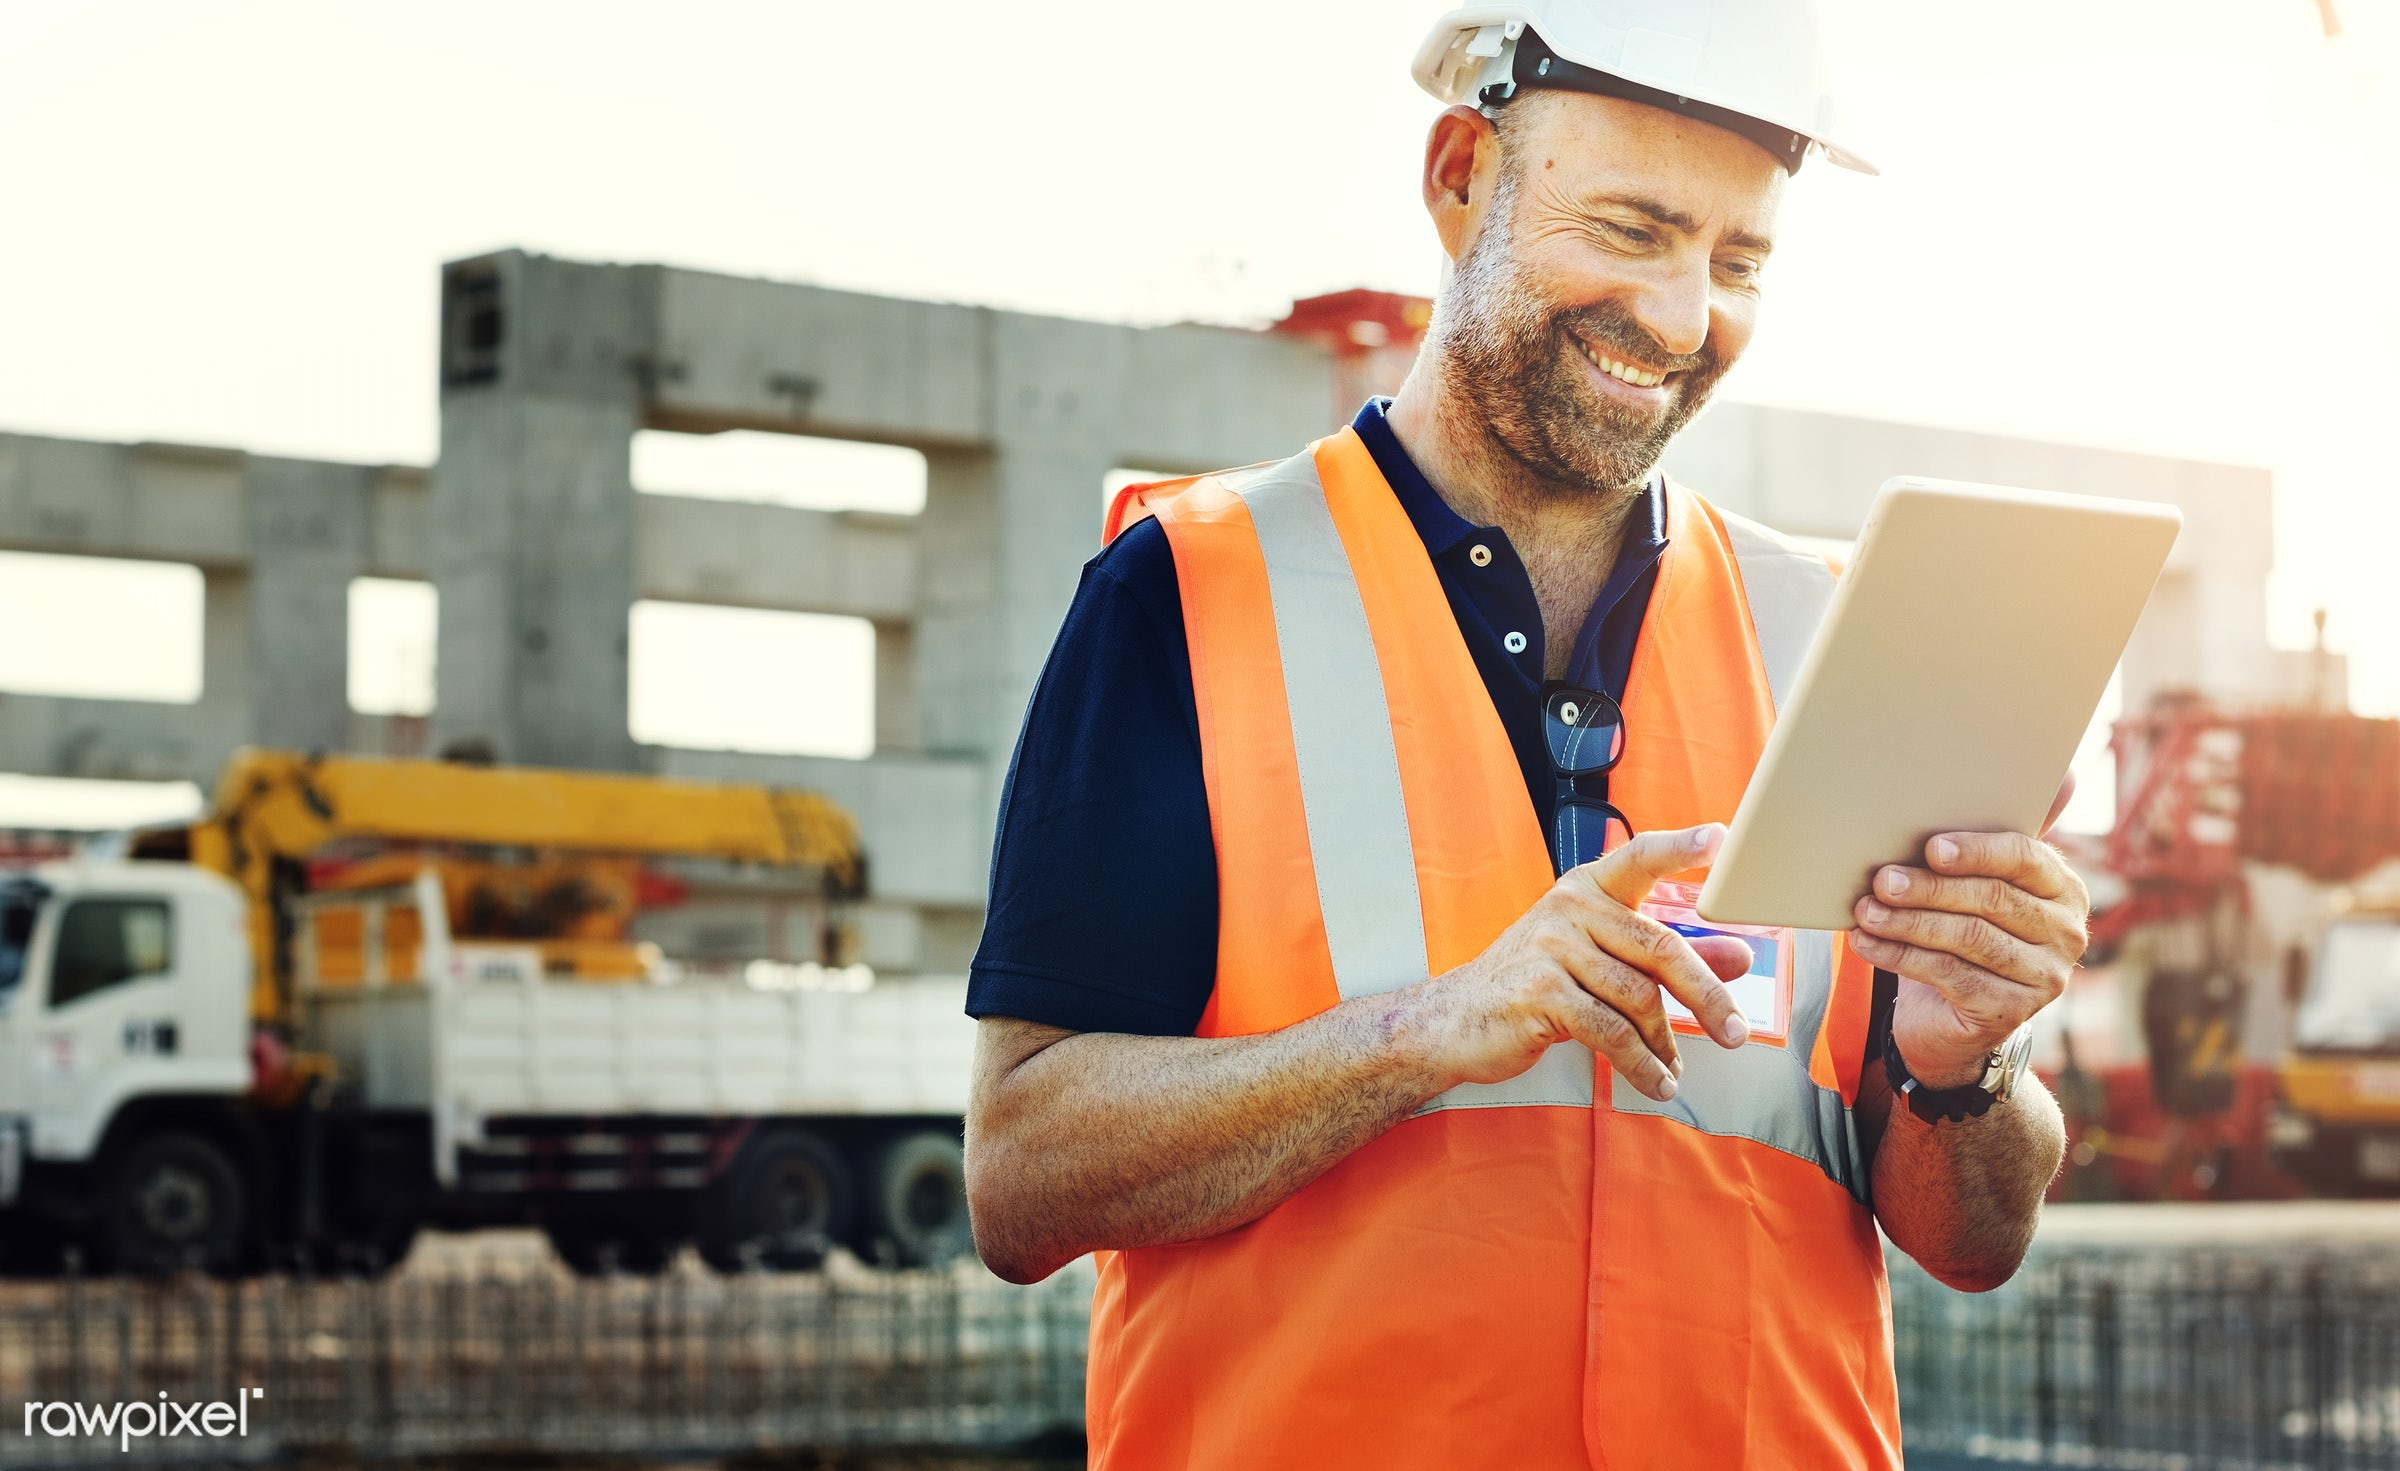 Site engineer on a construction site - construction, worker, engineer, tablet, technology, safety, construction site,...